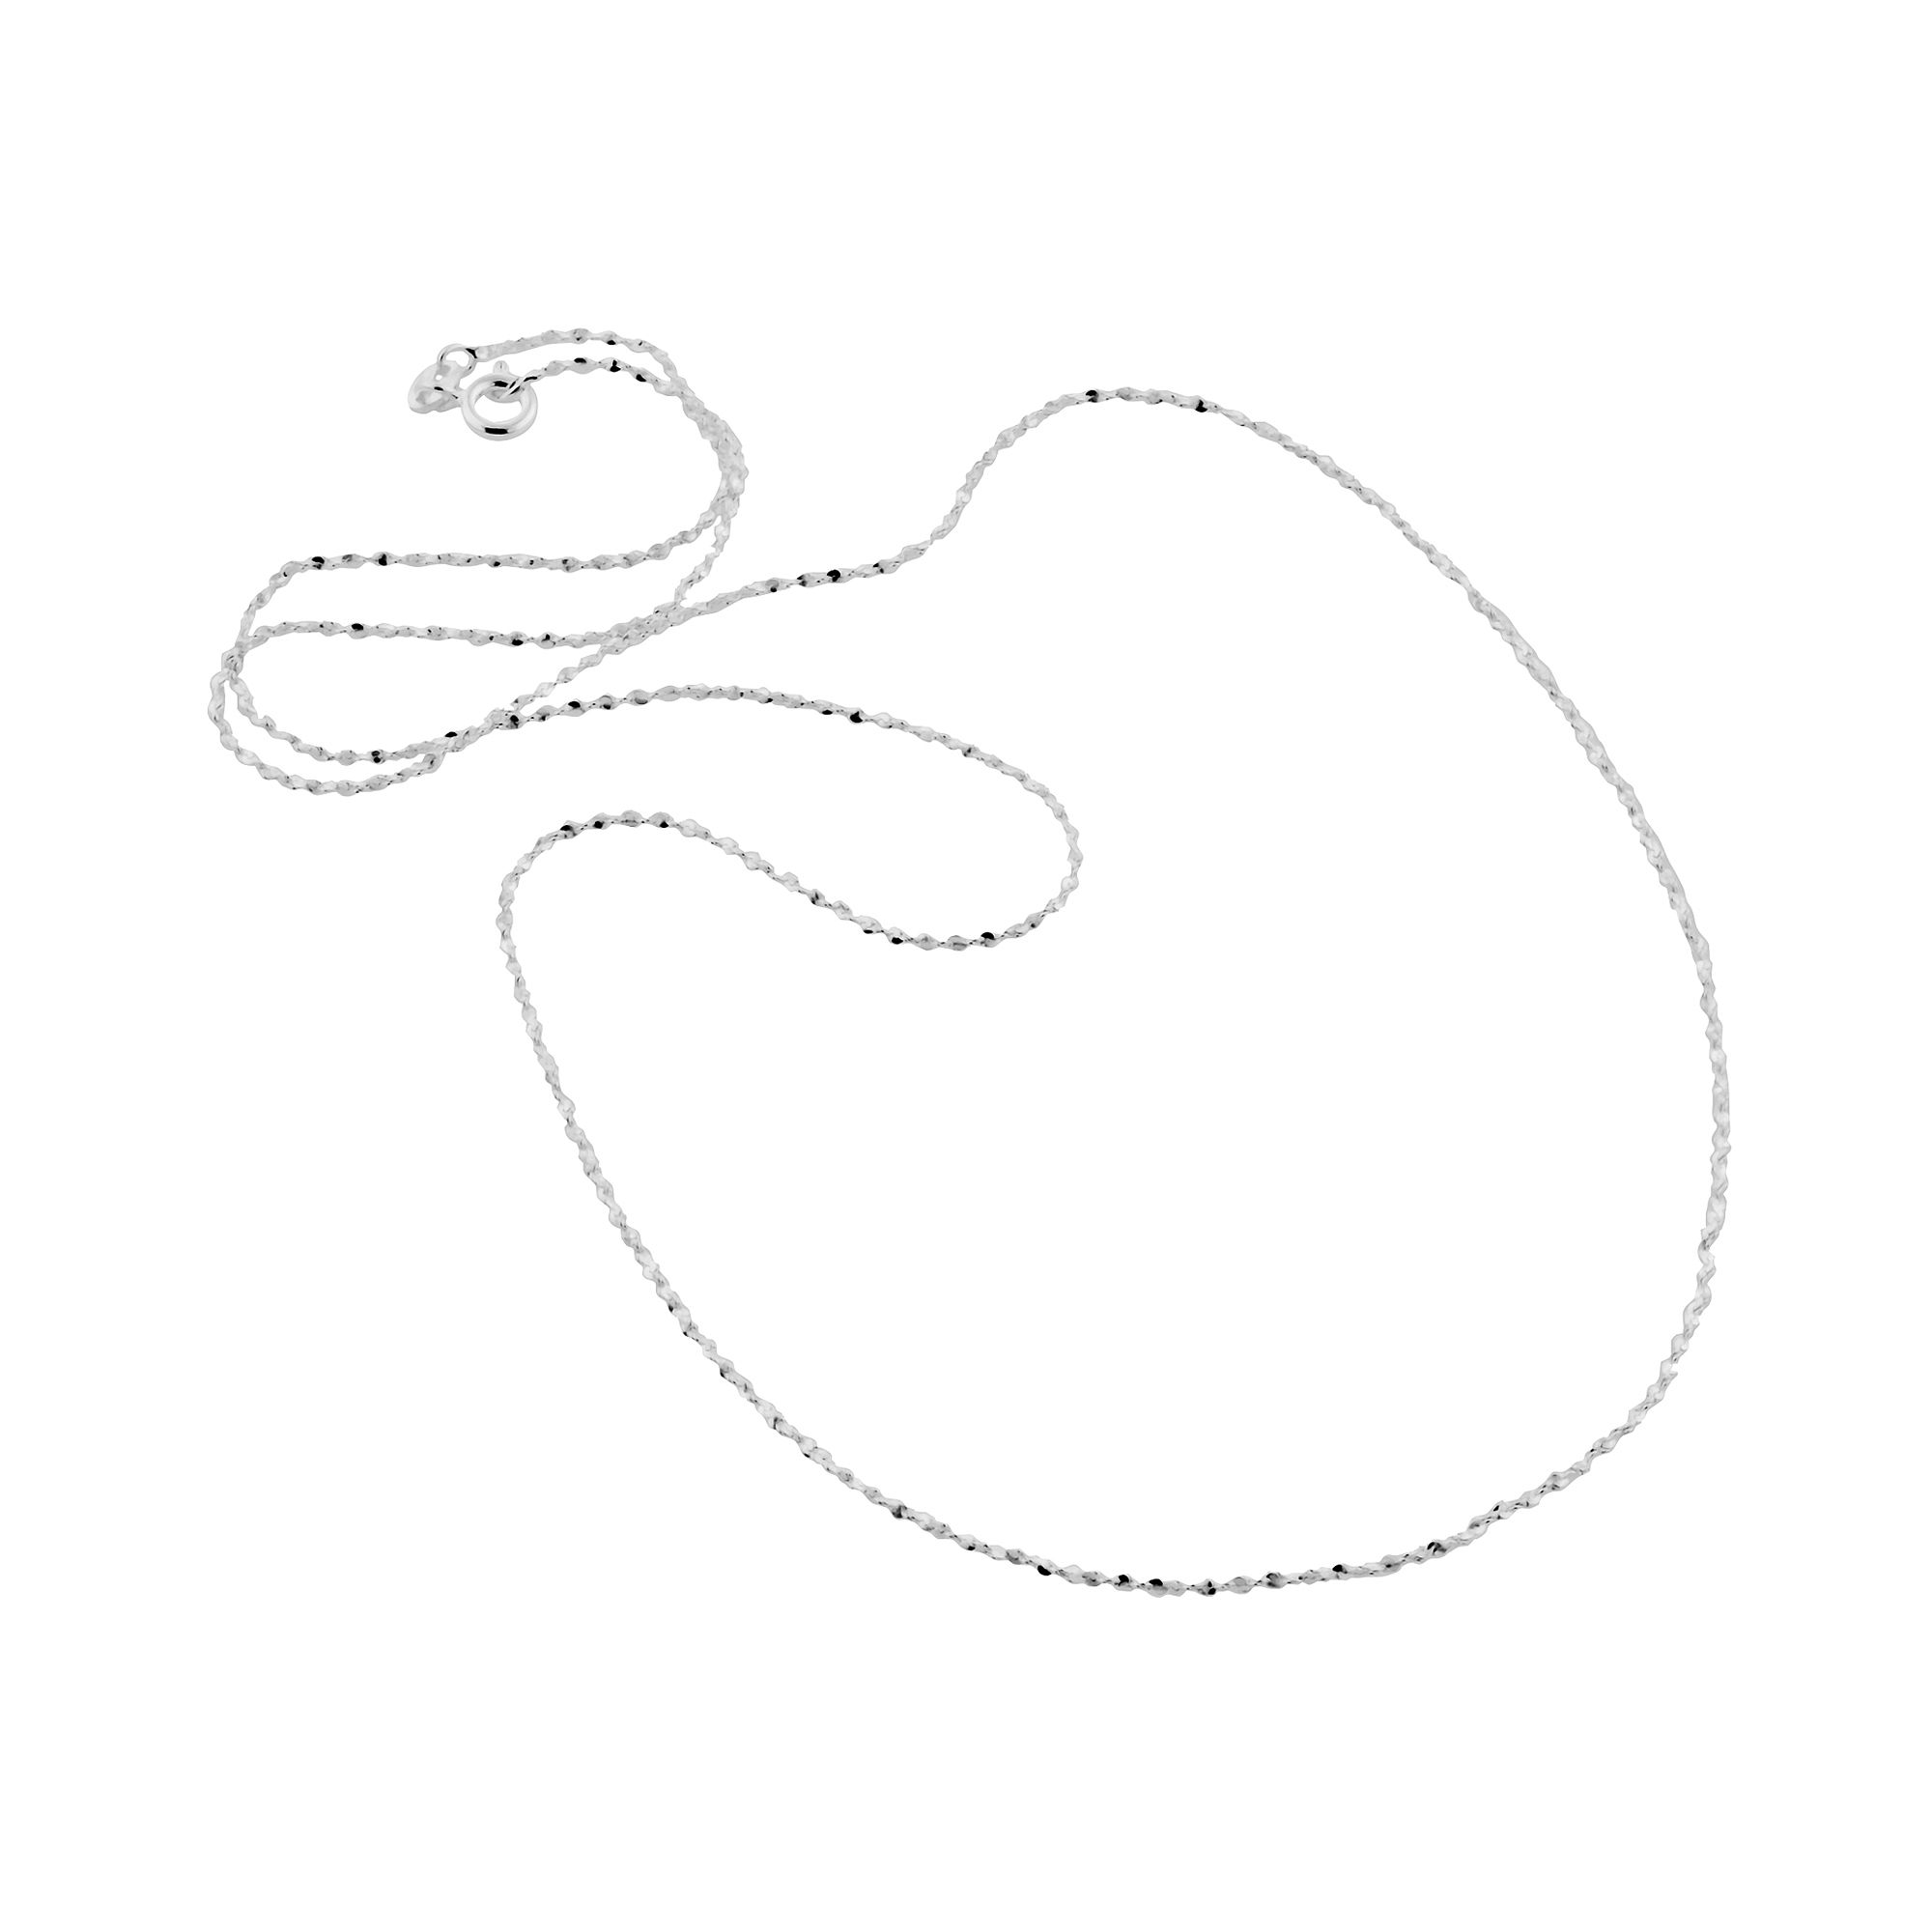 Made in Italy Sterling Silver 20 1mm Twisted Serpentine Chain